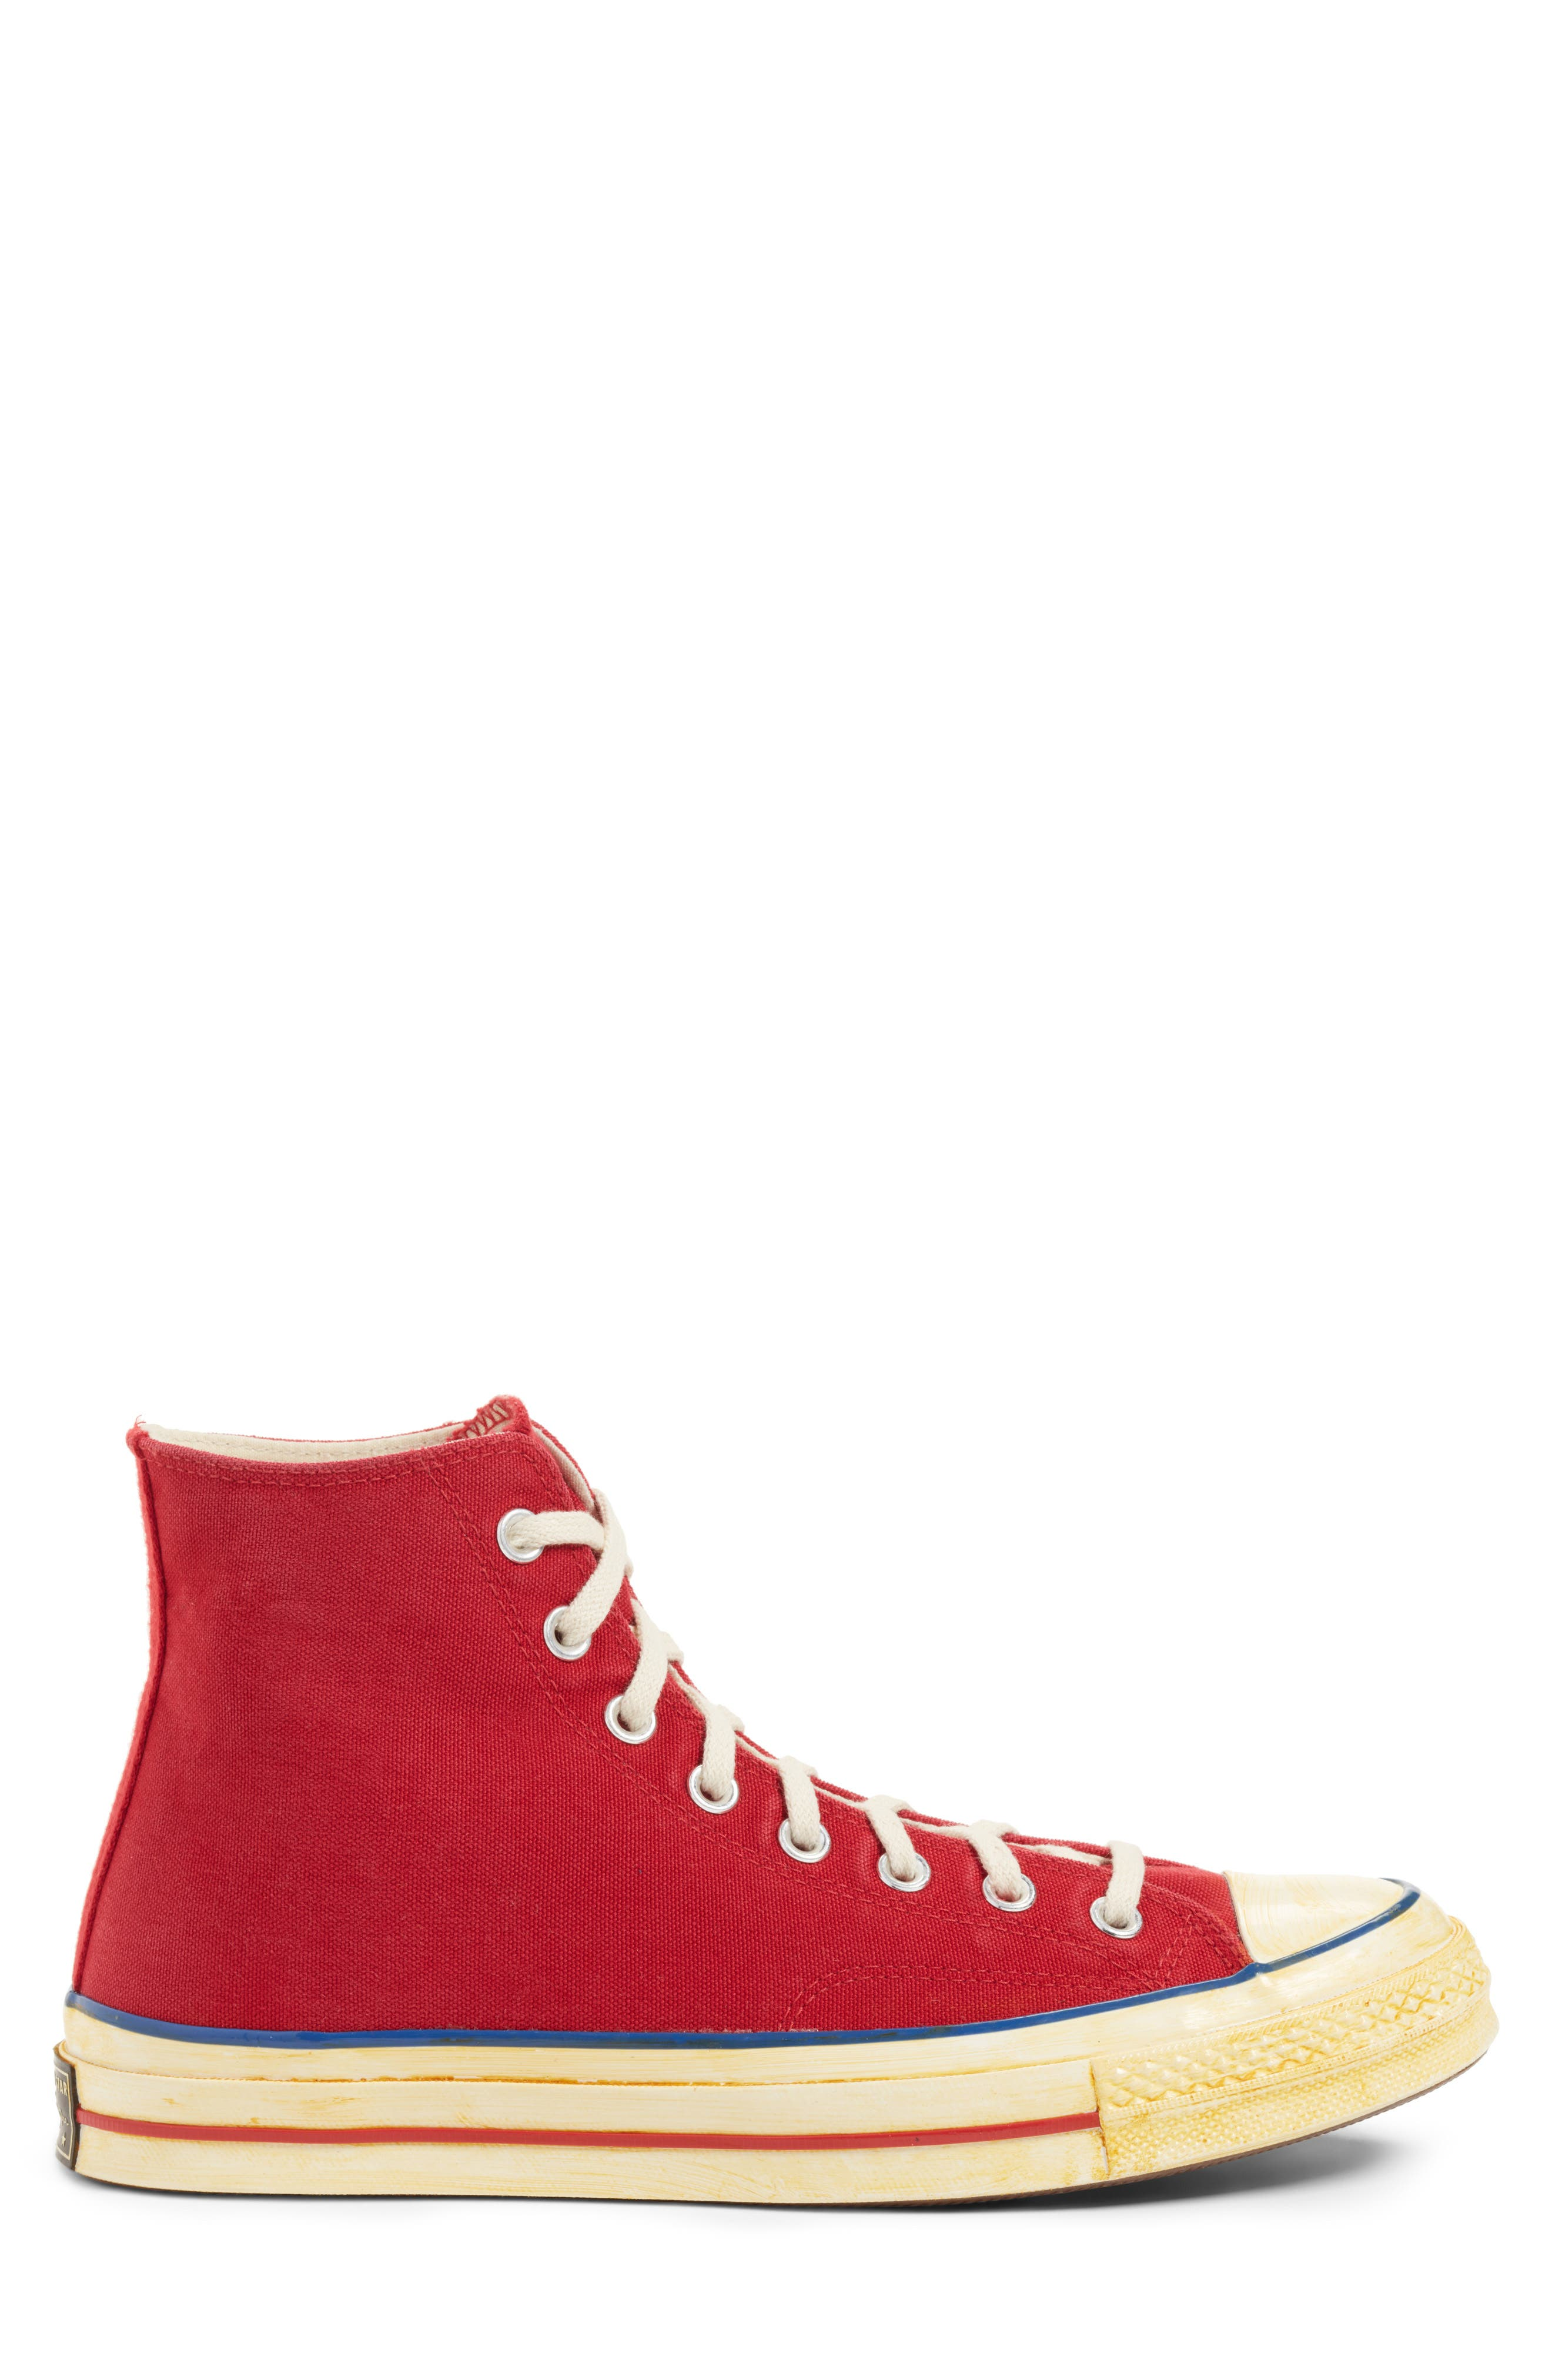 Chuck Taylor<sup>®</sup> All Star<sup>®</sup> 70 High Top Sneaker,                             Alternate thumbnail 4, color,                             Red